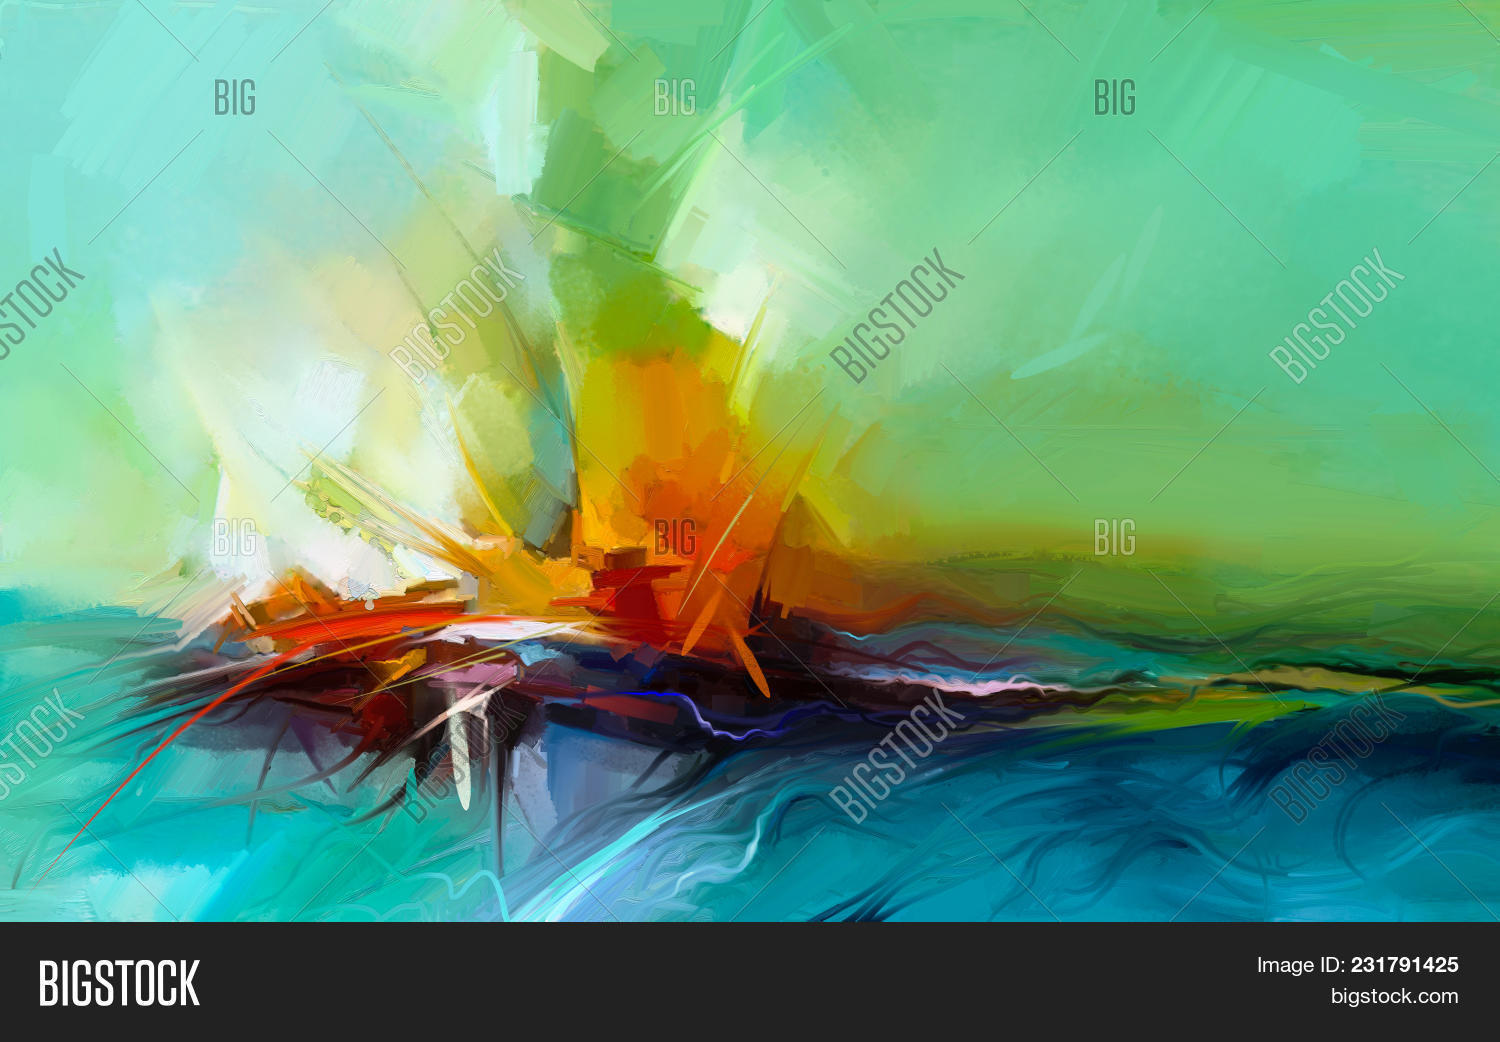 abstract,acrylic,art,artist,artistic,artwork,background,blue,bright,brush,brushstroke,canvas,color,colorful,contemporary,creative,decoration,decorative,design,drawing,element,green,hand,illustration,impressionism,media,modern,nature,oil,paint,painted,painter,painting,palette,paper,picture,red,shape,sky,stroke,summer,sunlight,sunrise,texture,vibrant,vivid,wall,yellow